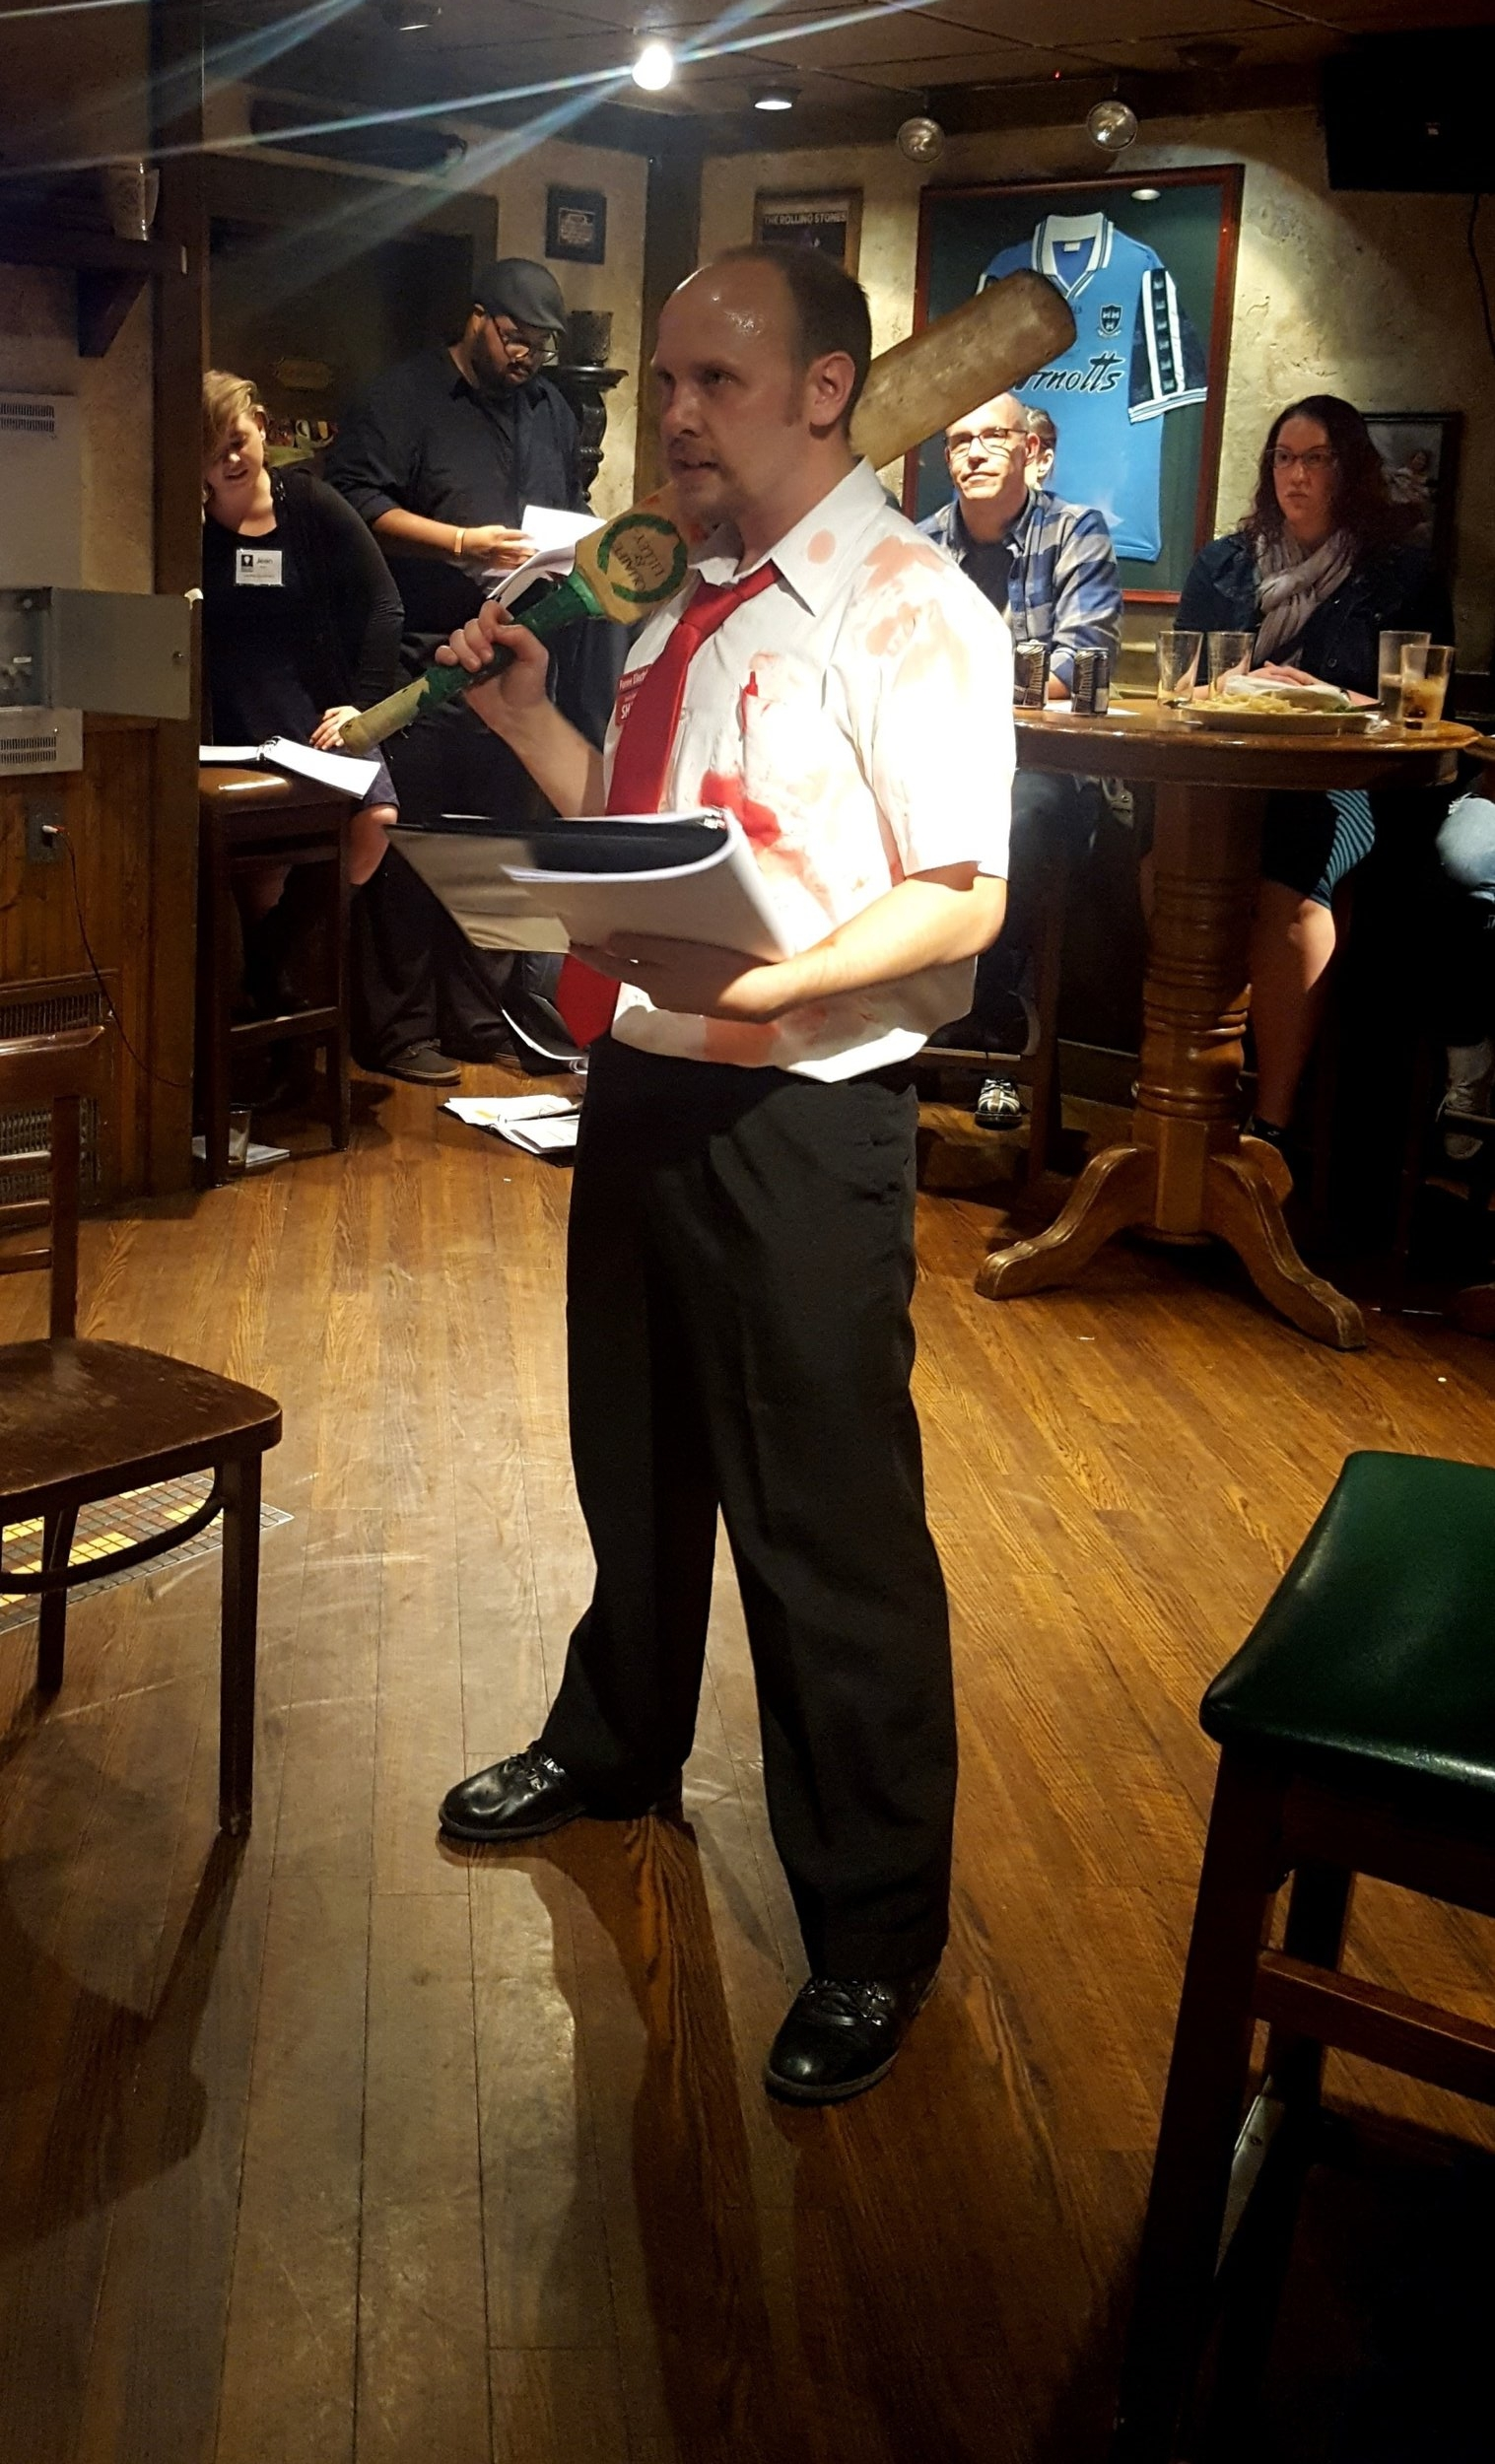 Scott Ray Merchant as Shaun in  You've Got READ on You: A  Shaun of The Dead  Live Reading , held Oct. 17, 2017, at Celtic Crown.